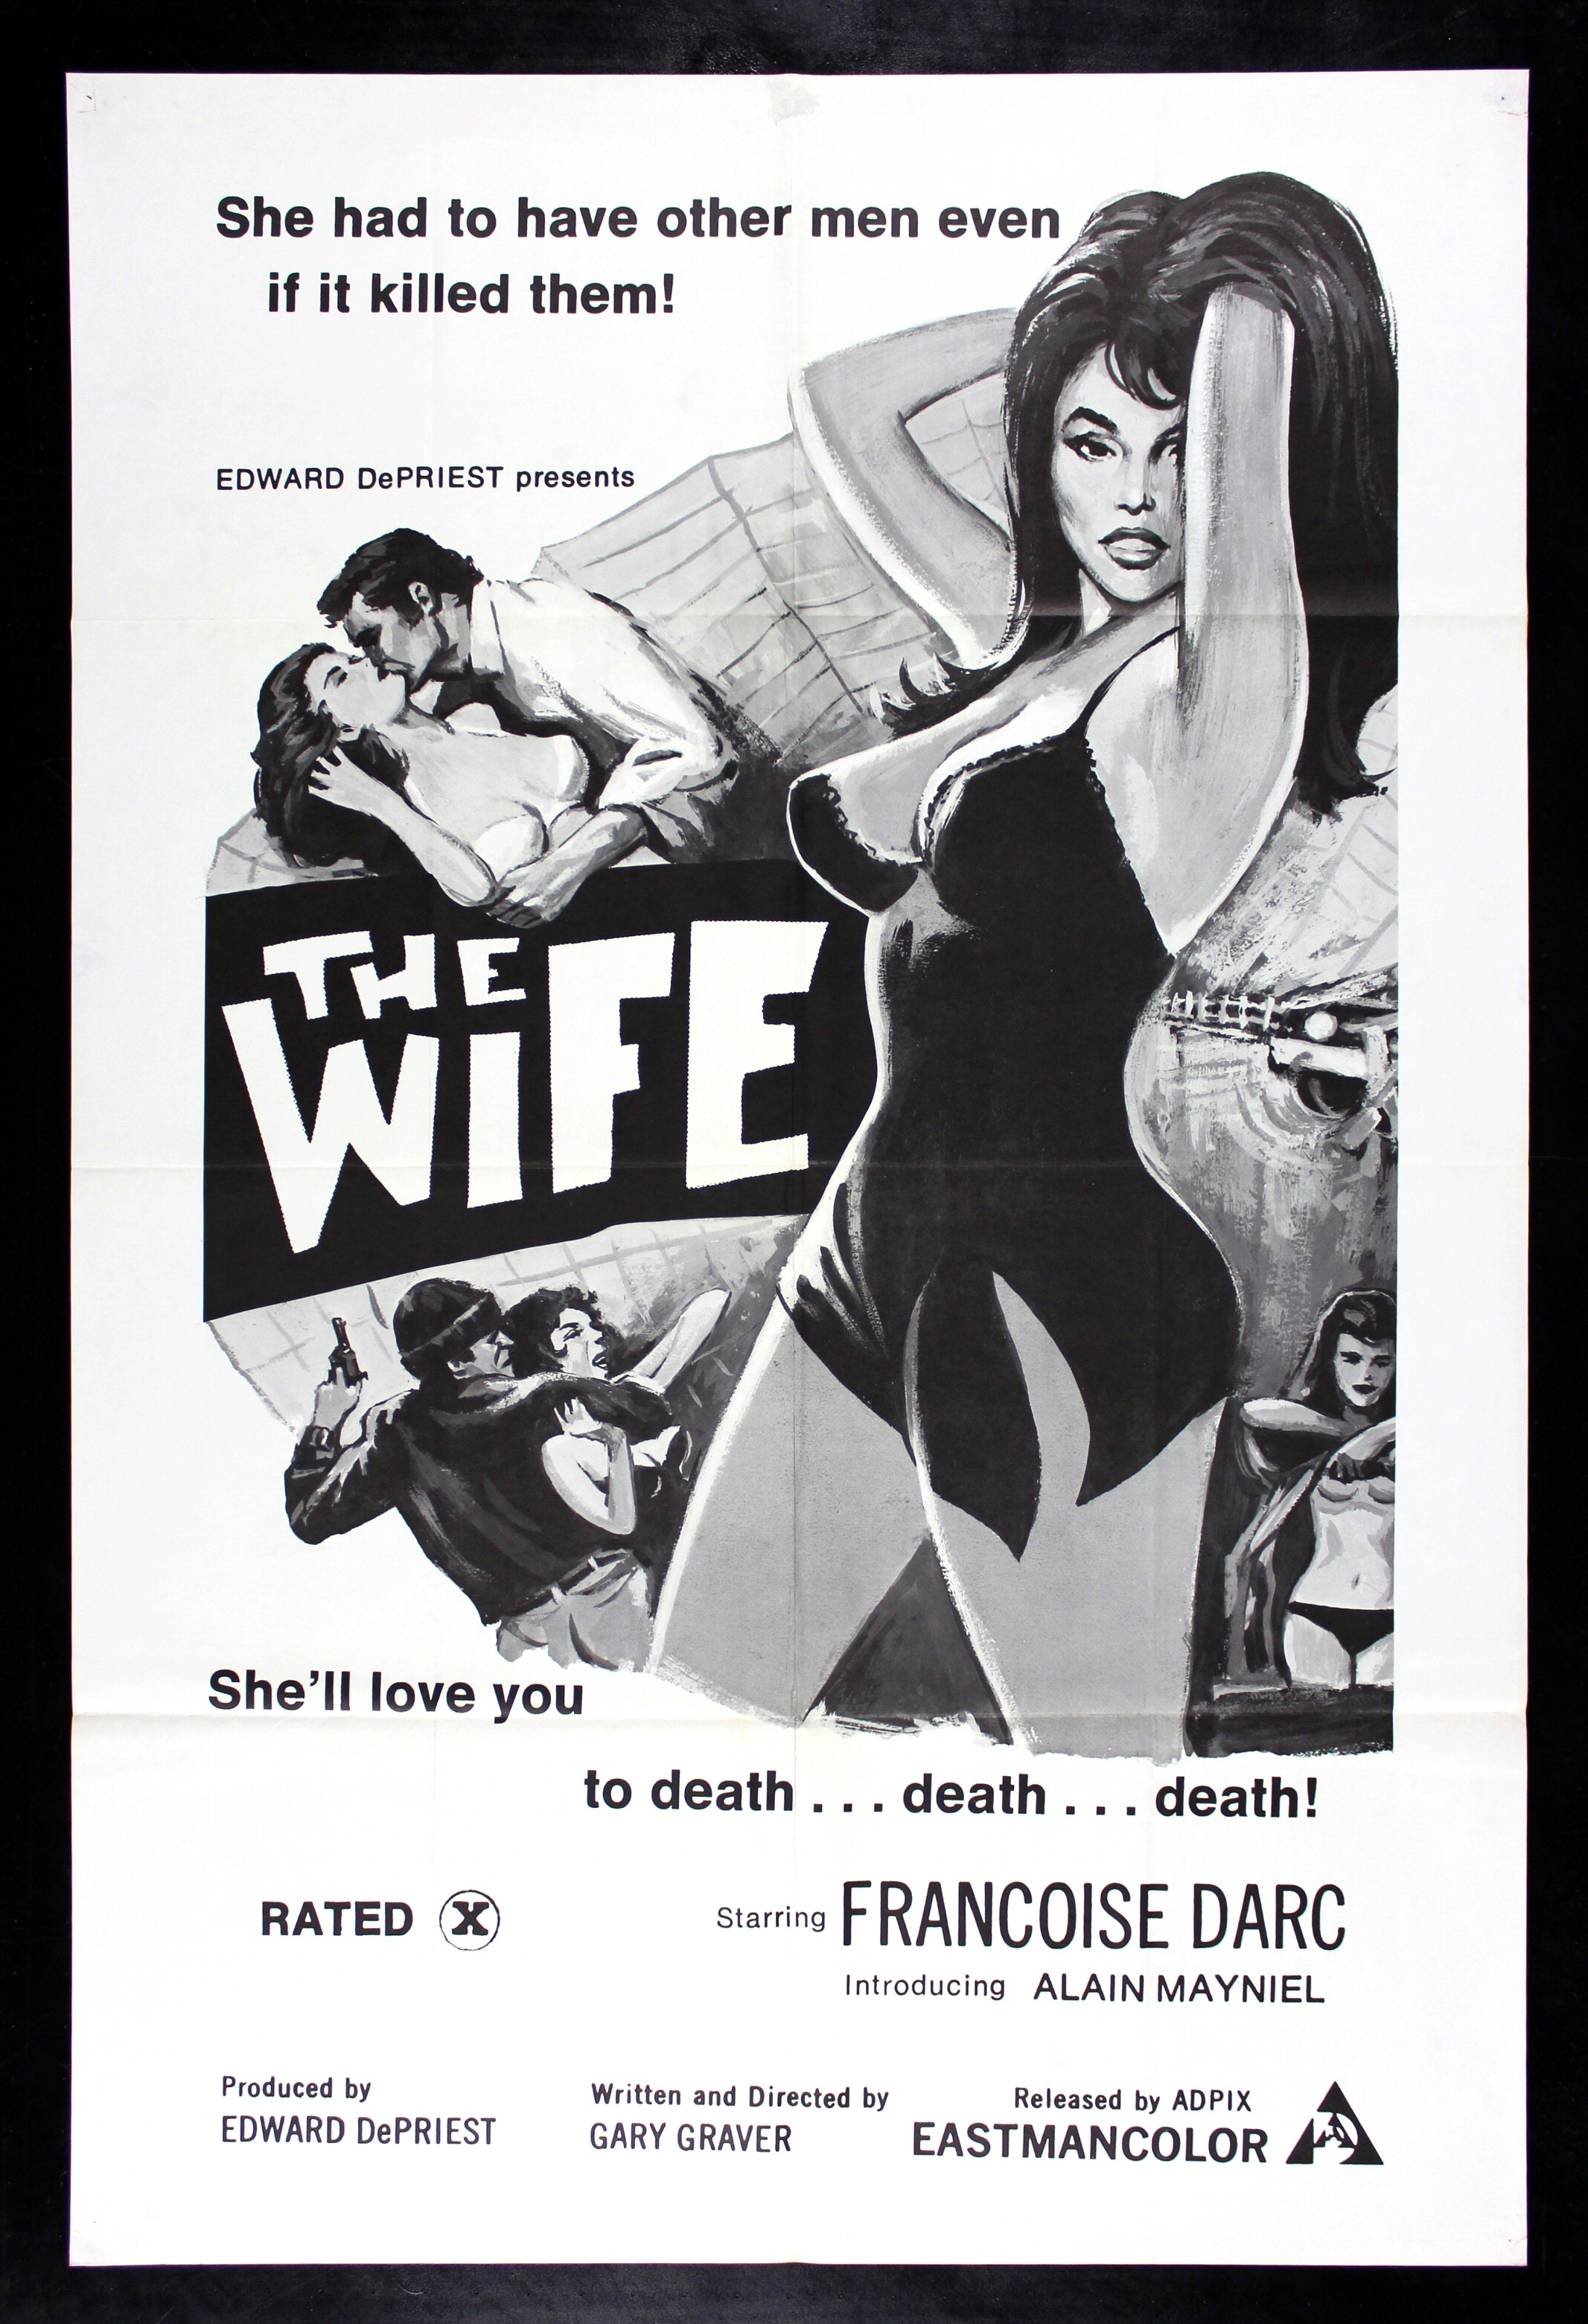 Pity, wife poster adult community sex picture could